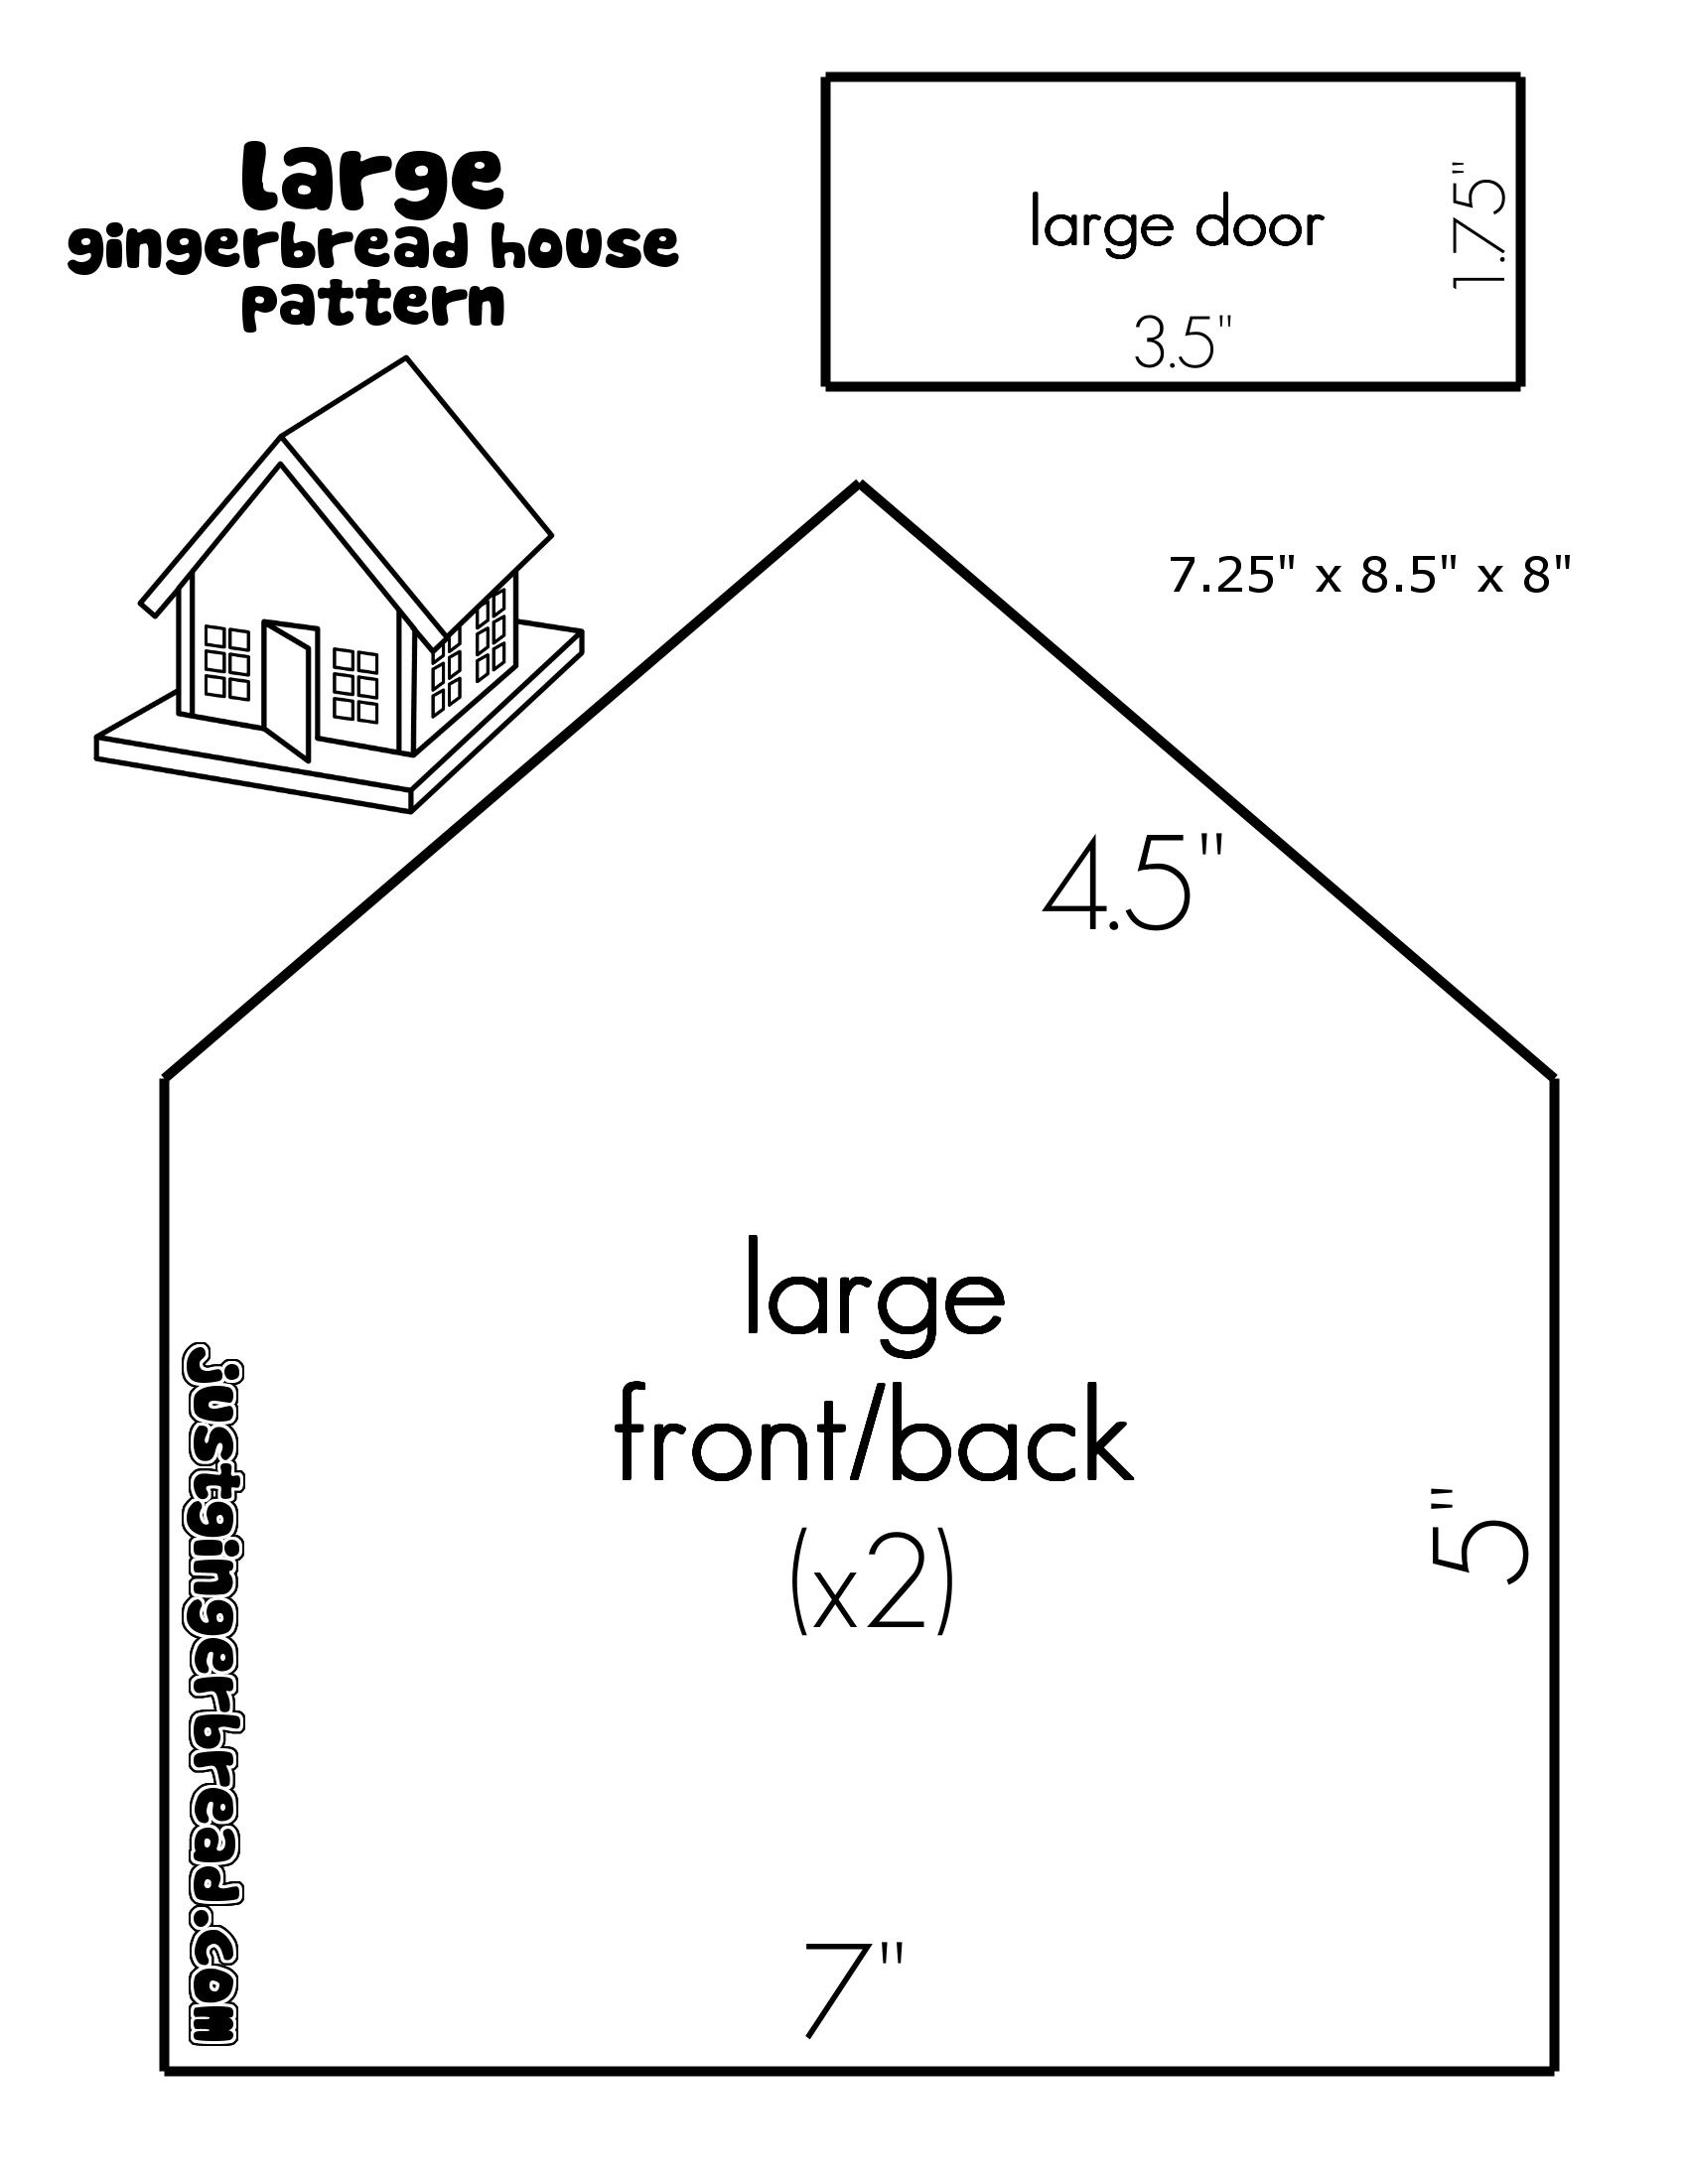 gingerbread house template big  Large house template | Gingerbread house patterns ...